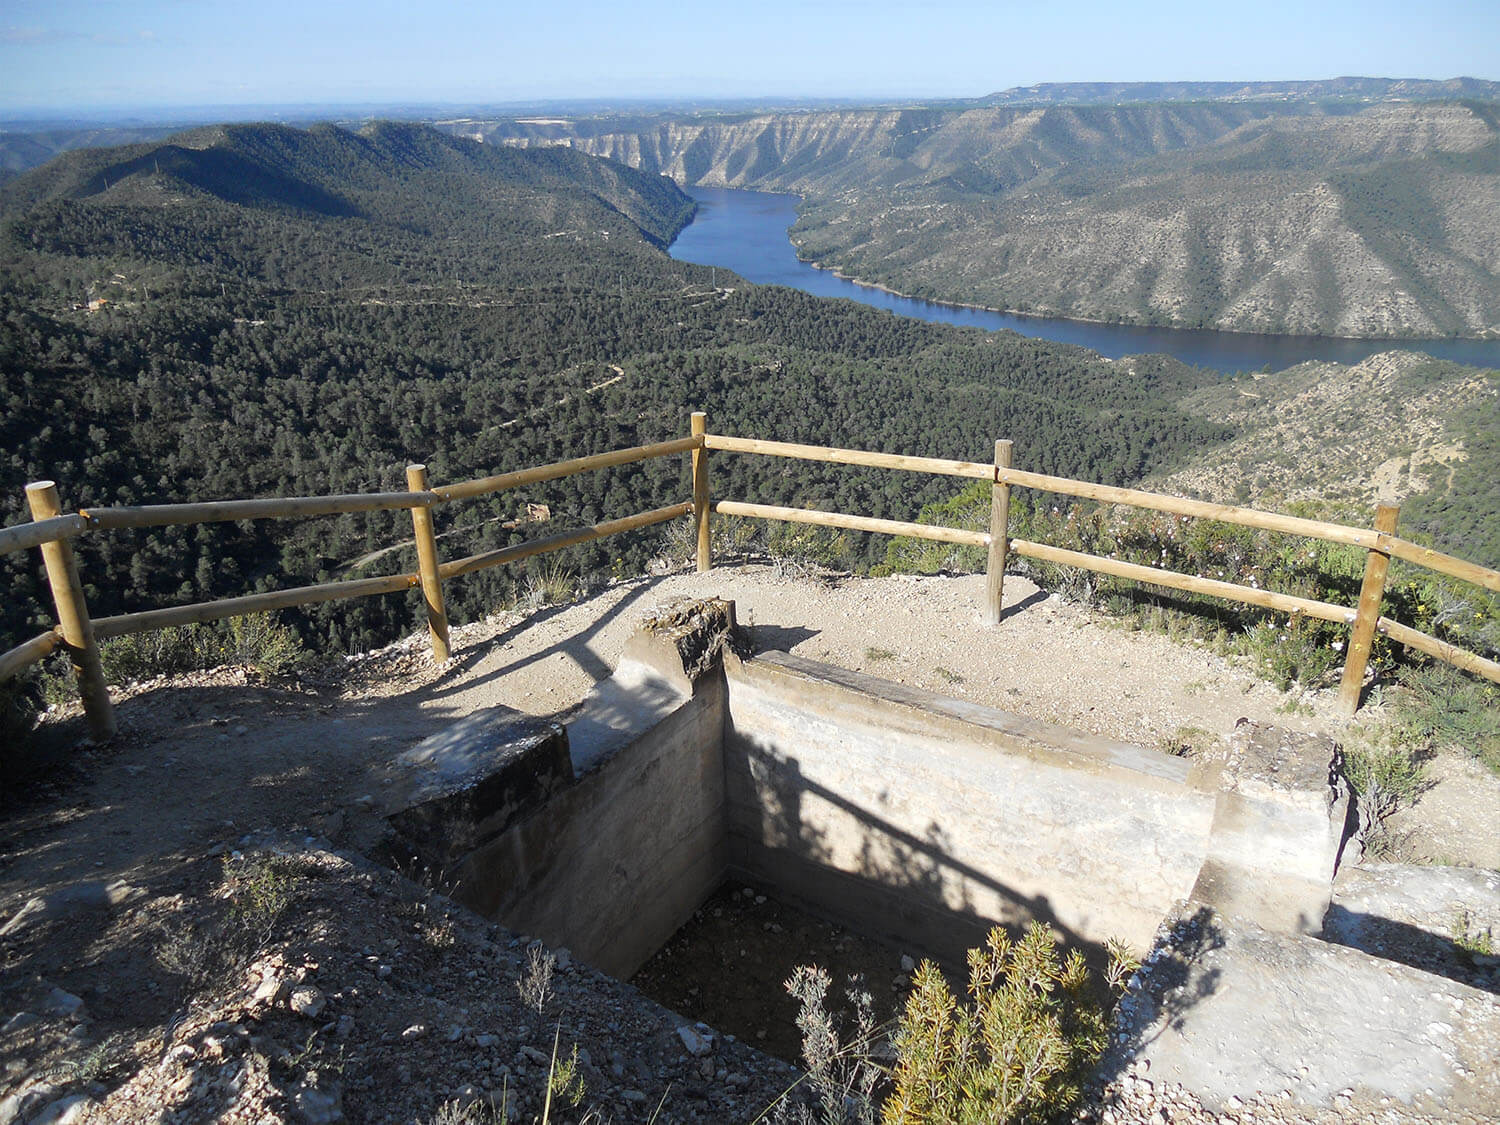 mirador_cingle de la pena